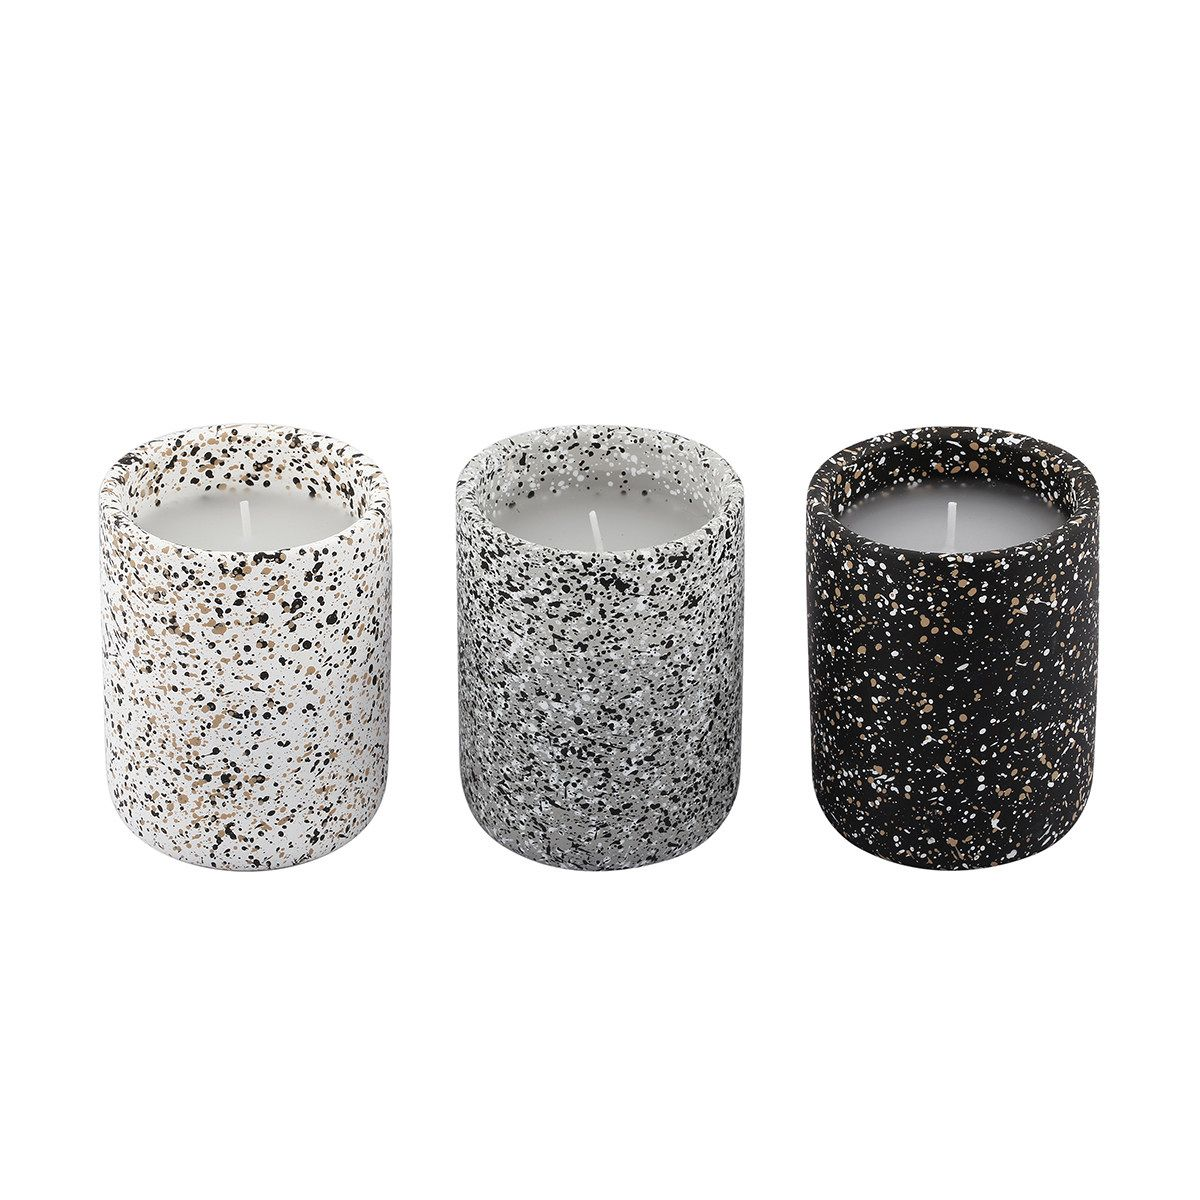 Set Of 3 Terrazzo Look Candles | Kmart | Interior Design Inspiration ...